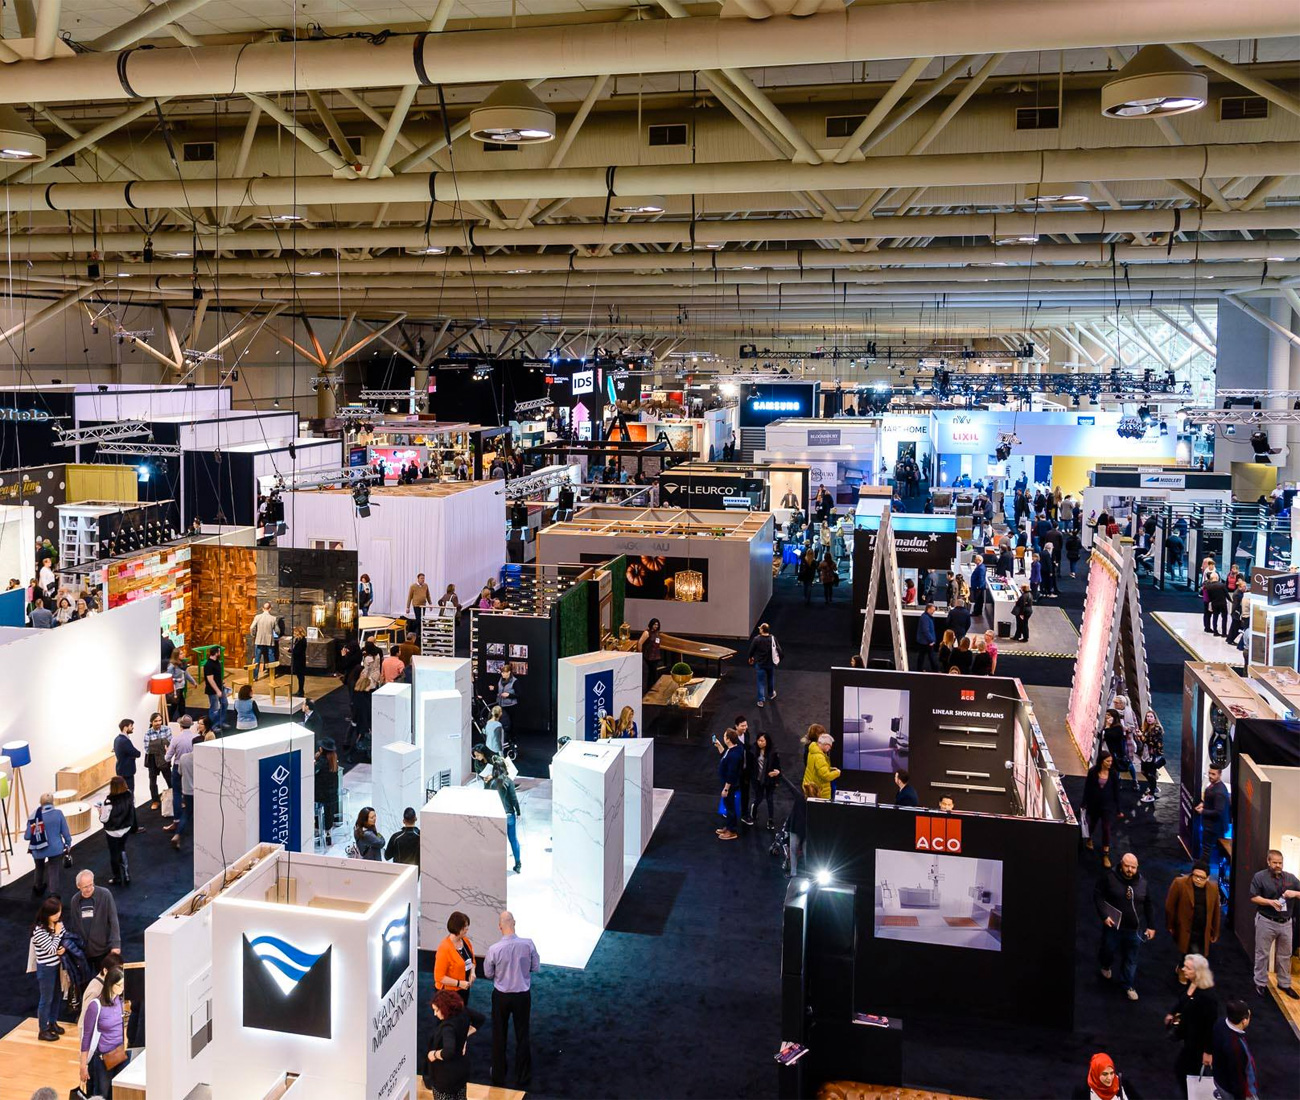 Home Design Show on office show, home delivery show, technology show, home art show, home light show, lighting show, crafts show, home show giveaways, food show, jewelry show, home repair show,